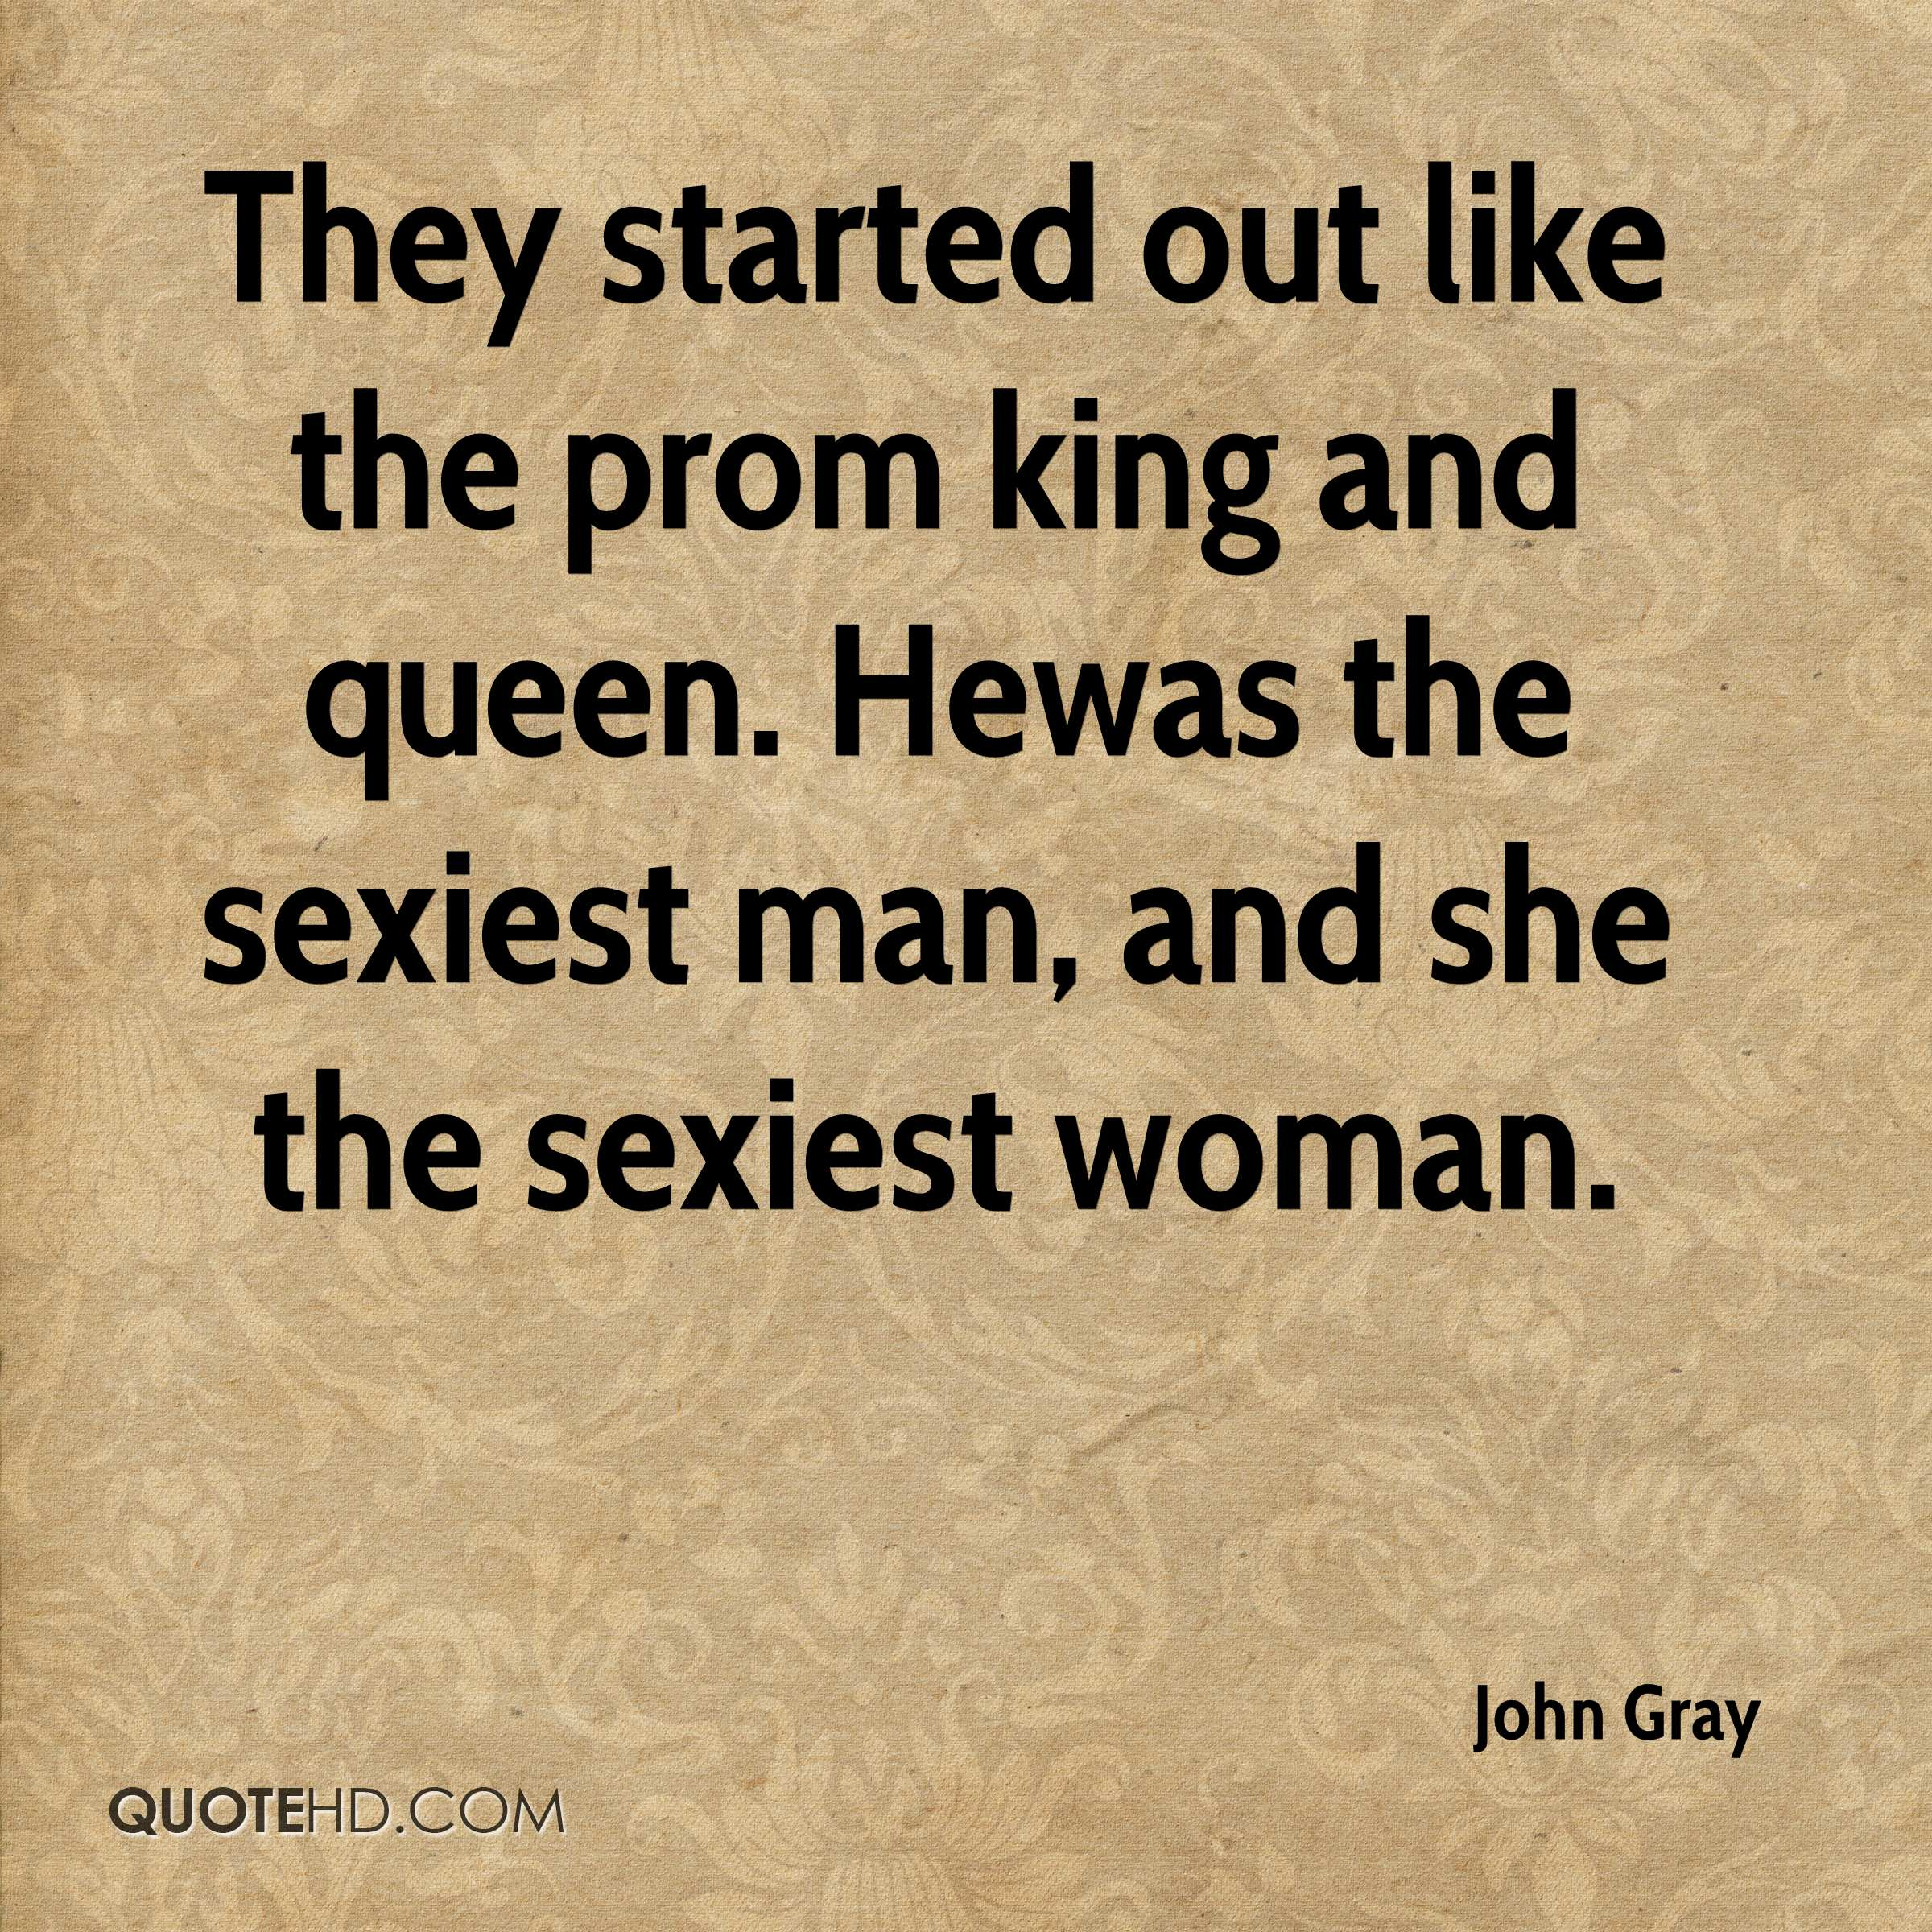 They started out like the prom king and queen. Hewas the sexiest man, and she the sexiest woman.